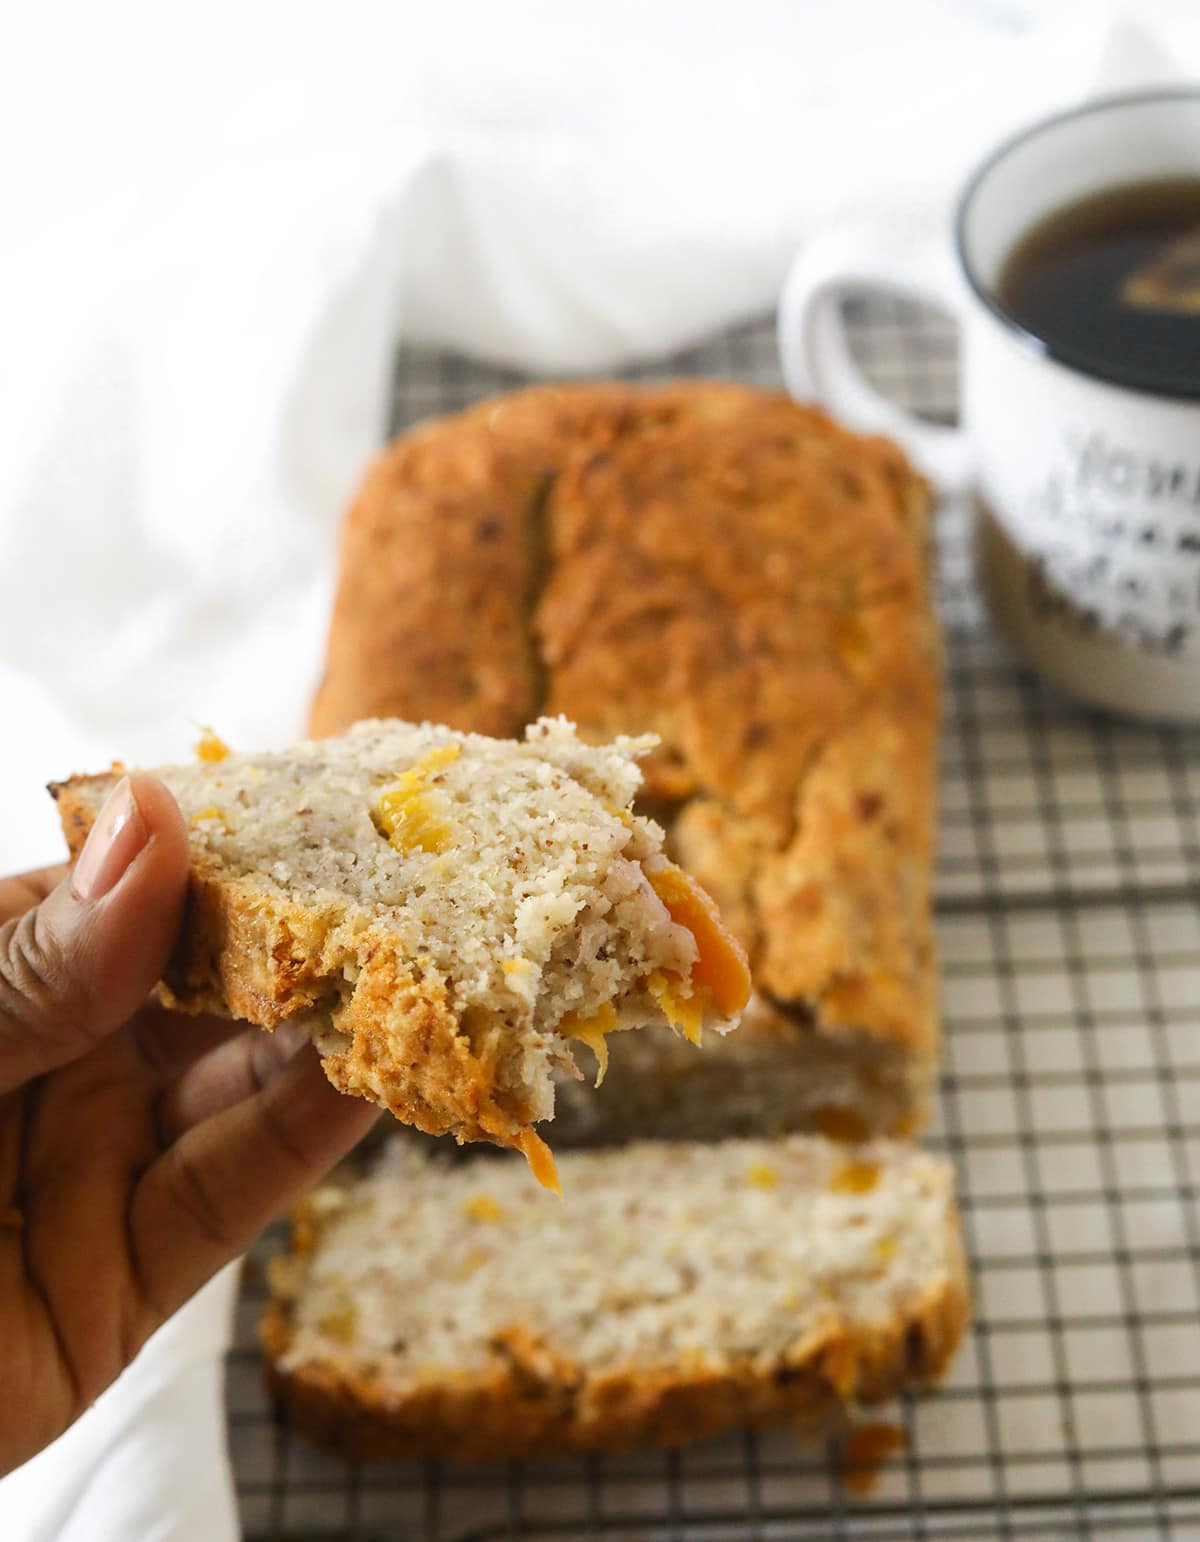 Vegan peach banana bread on a wire rack with two slices, hold one slice in hand on a white background, white napkin and white mug with tea